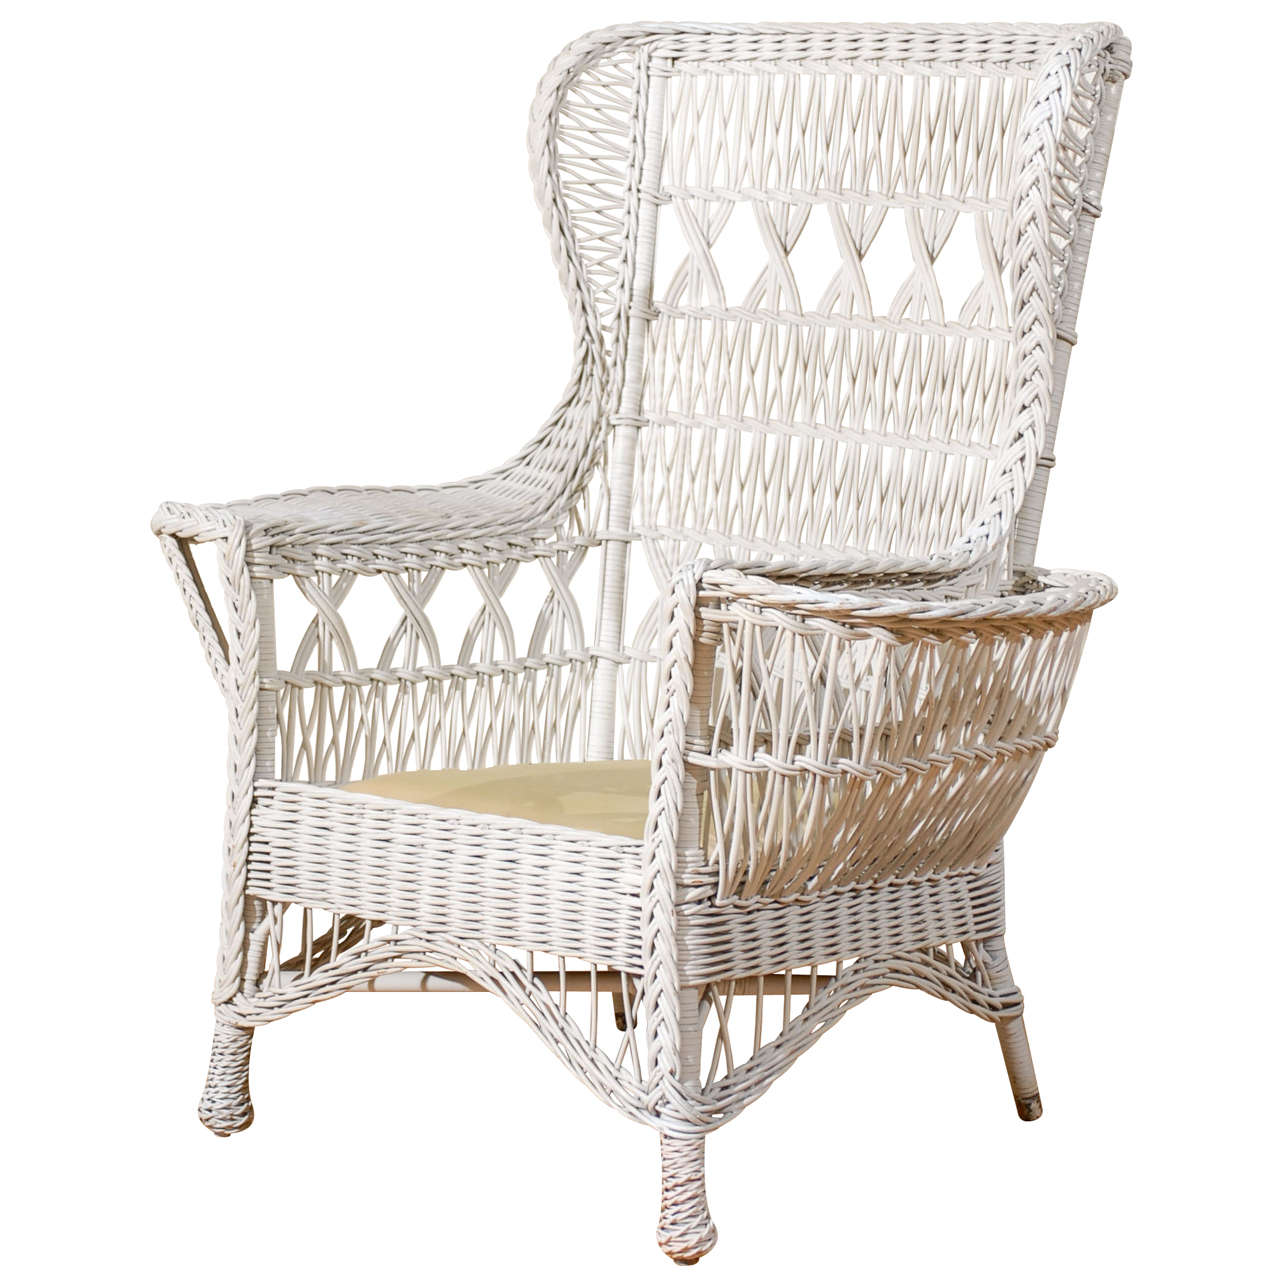 Charming Antique American Wicker Wing Chair With Magazine Pocket For Sale